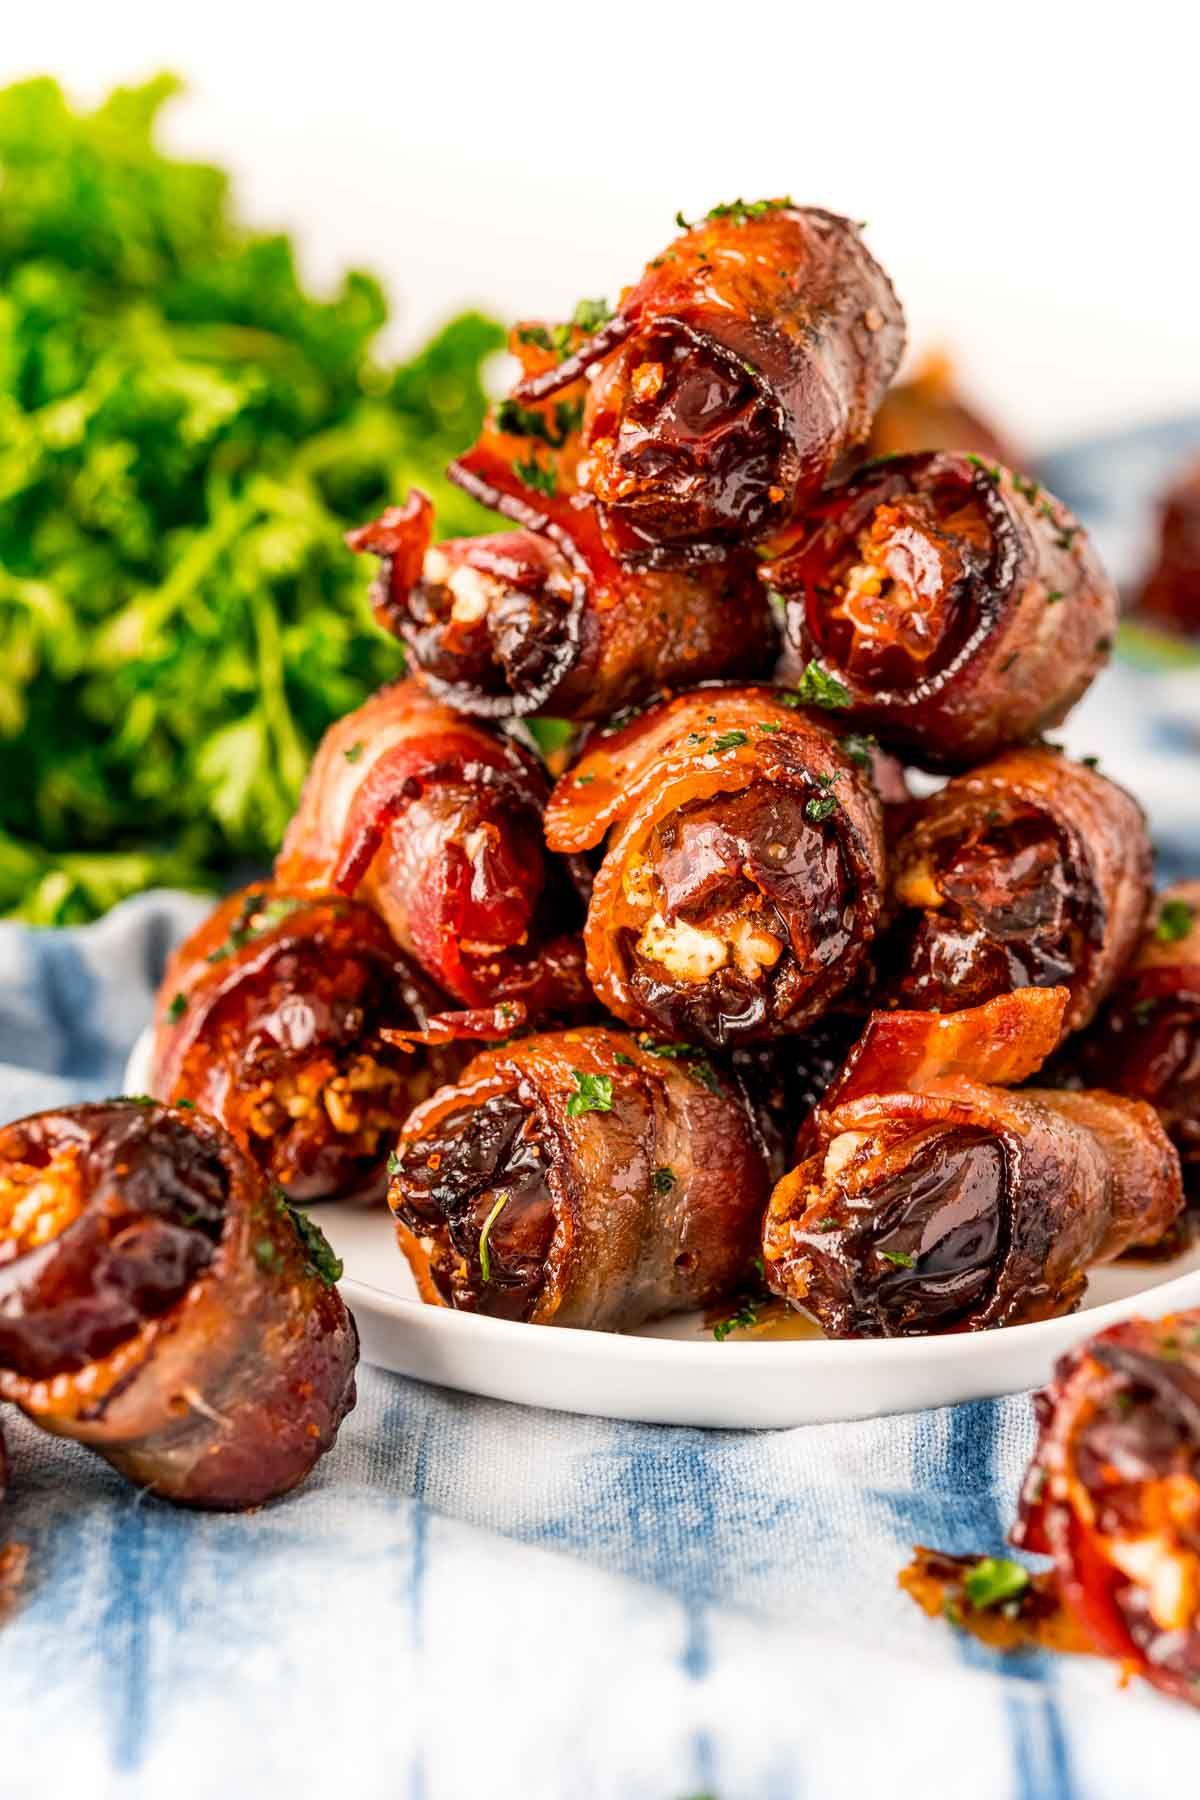 PIle of bacon wrapped dates on a white plate